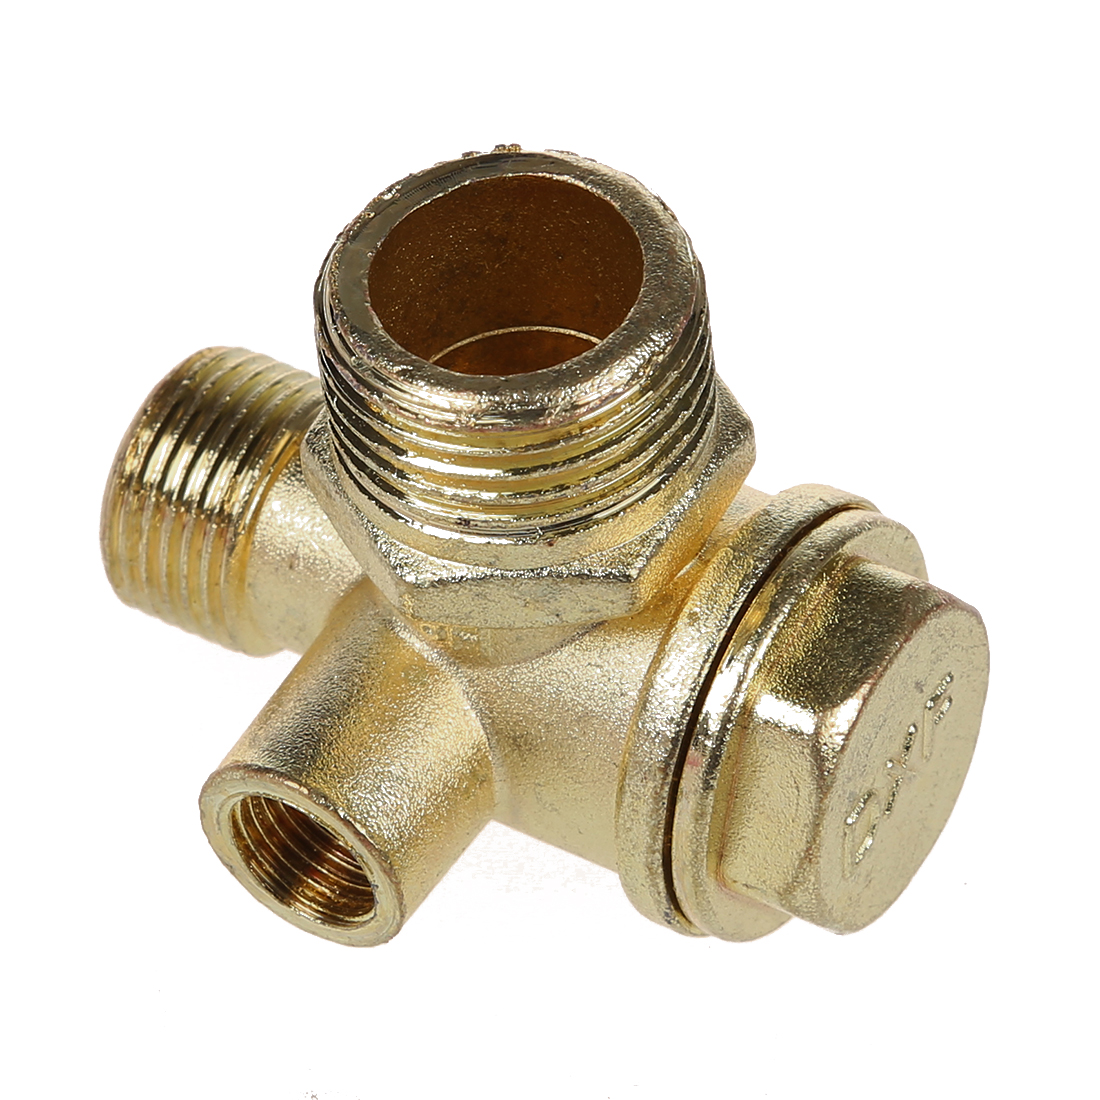 DSHA New Hot New 0.35 Female Thread Tube Connector Brass Check Valve for Air Compressor 3 8 check valve with solder connection for bus air conditioner and refrigeration truck replace sporlan check valve